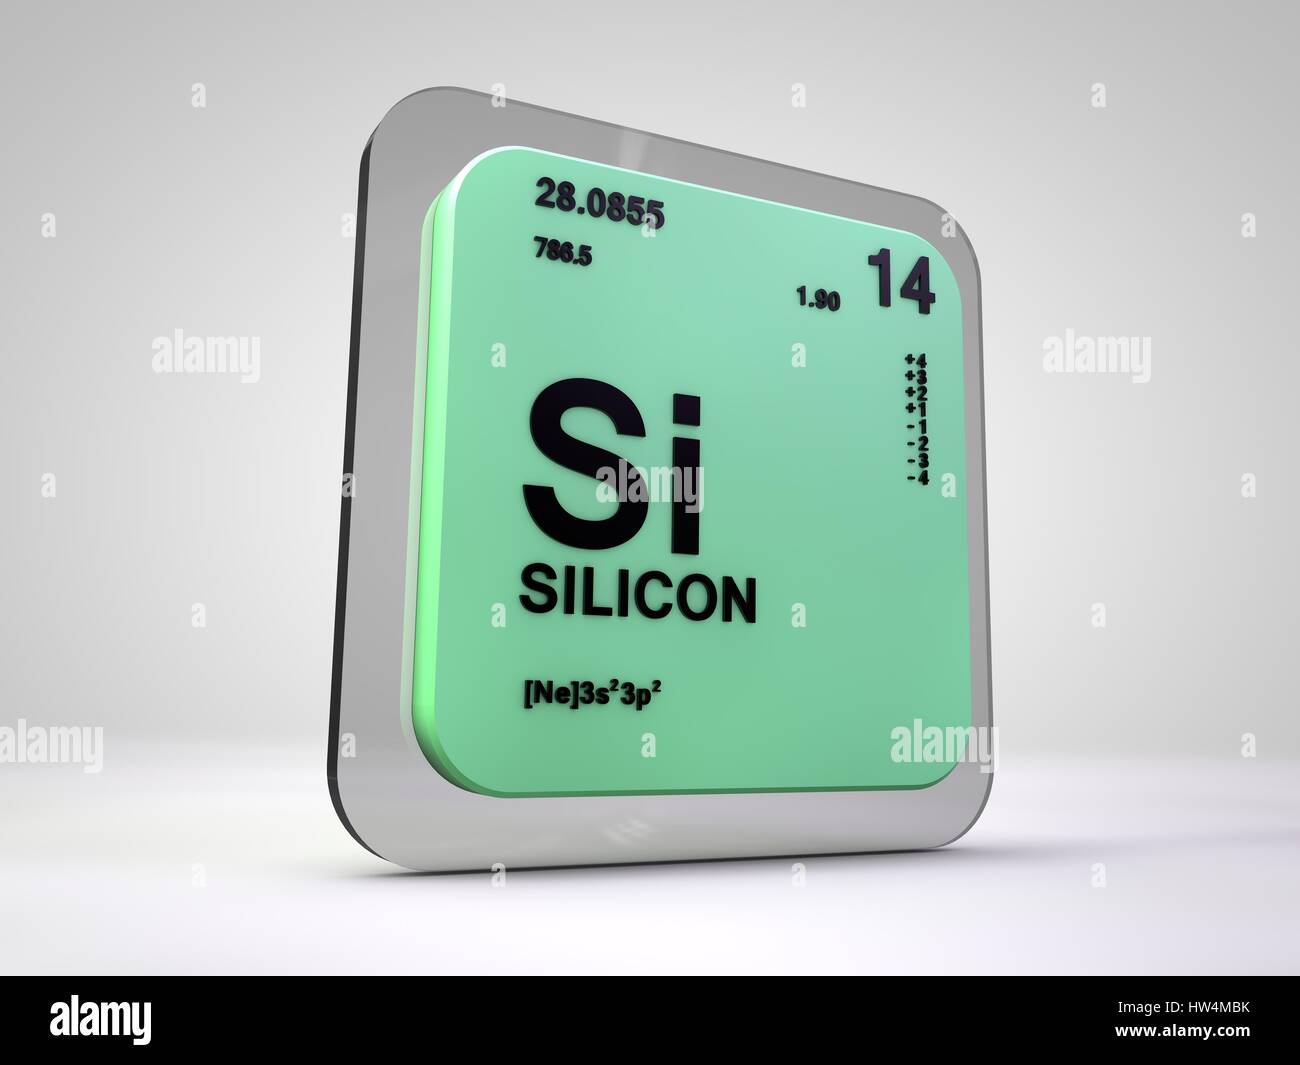 Silicon si chemical element periodic table 3d render stock silicon si chemical element periodic table 3d render buycottarizona